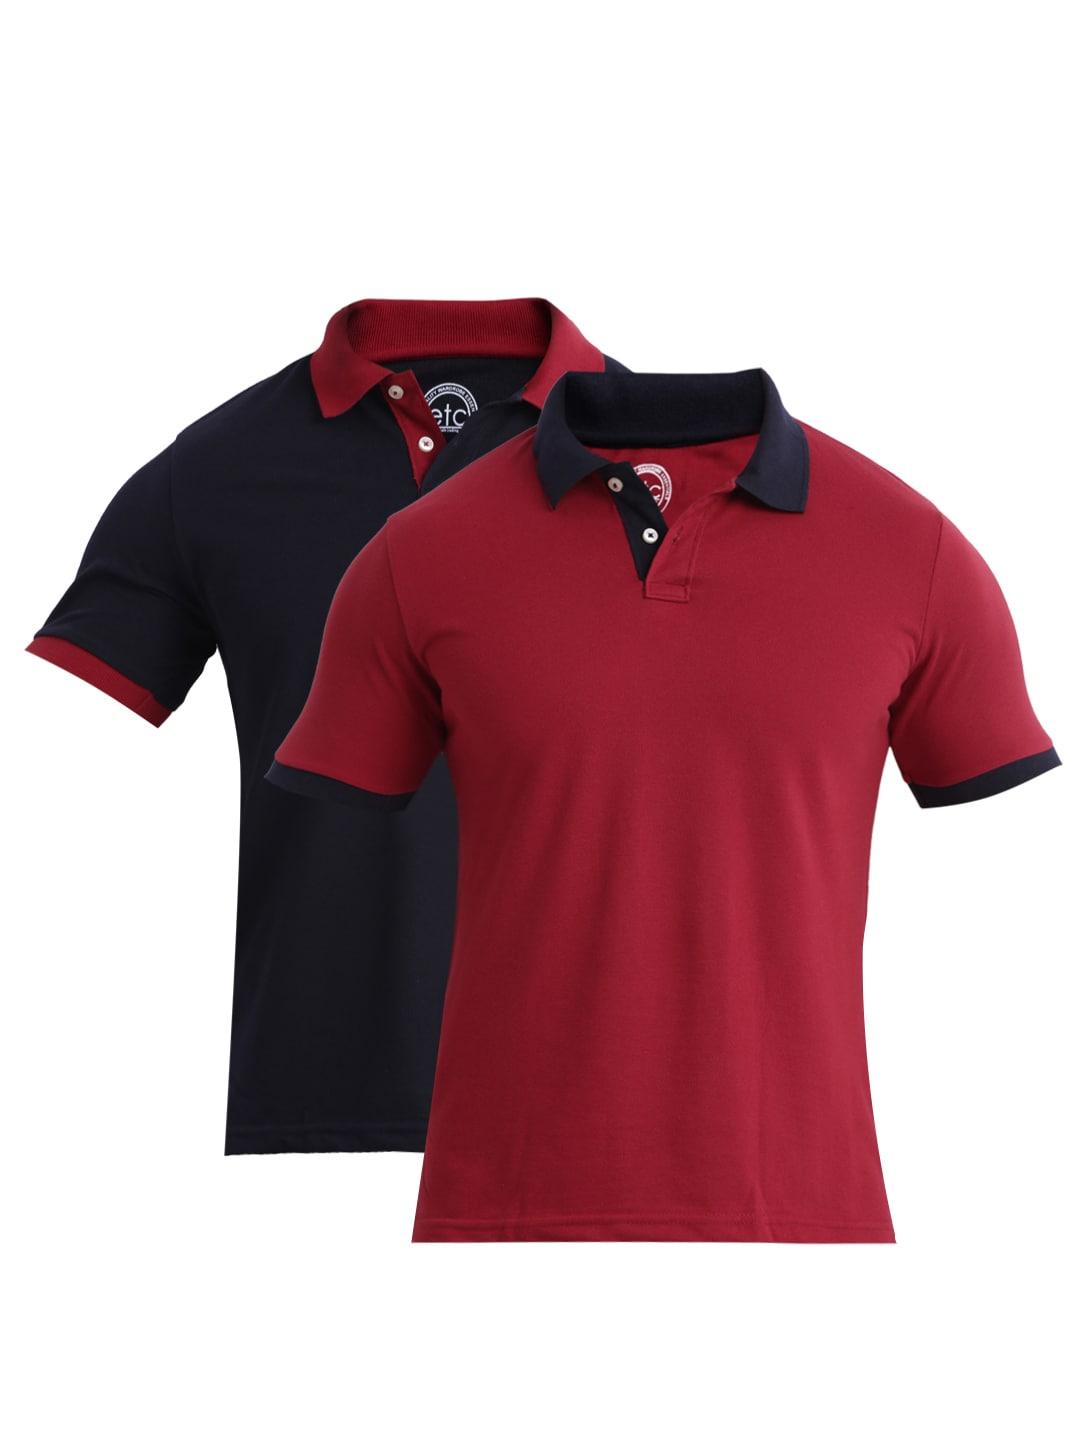 Shop for and buy mens t shirt online at Macy's. Find mens t shirt at Macy's.